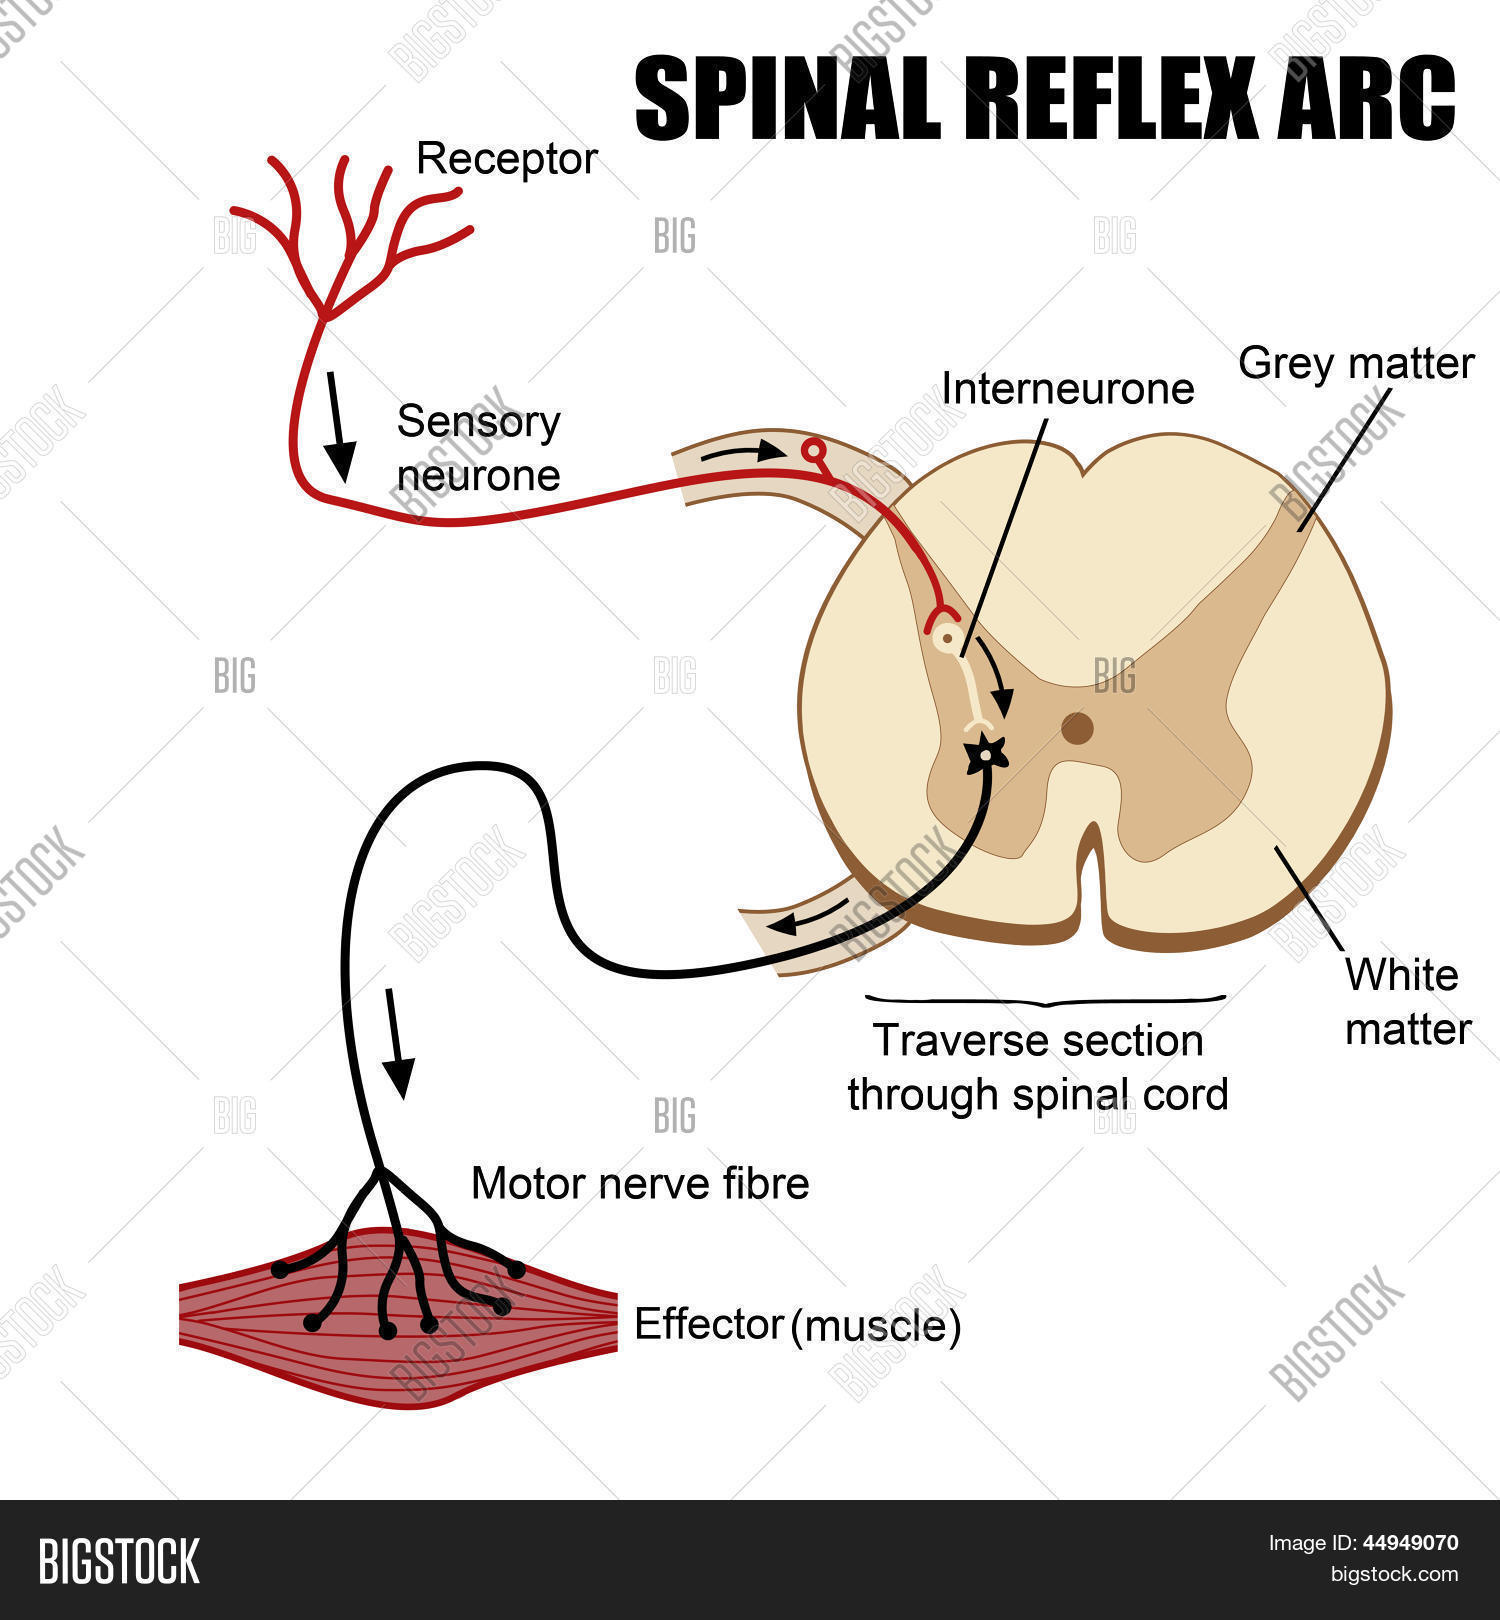 Spinal reflex diagram electrical work wiring diagram spinal reflex arc vector photo free trial bigstock rh bigstockphoto com spinal reflex arc diagram spine ccuart Choice Image